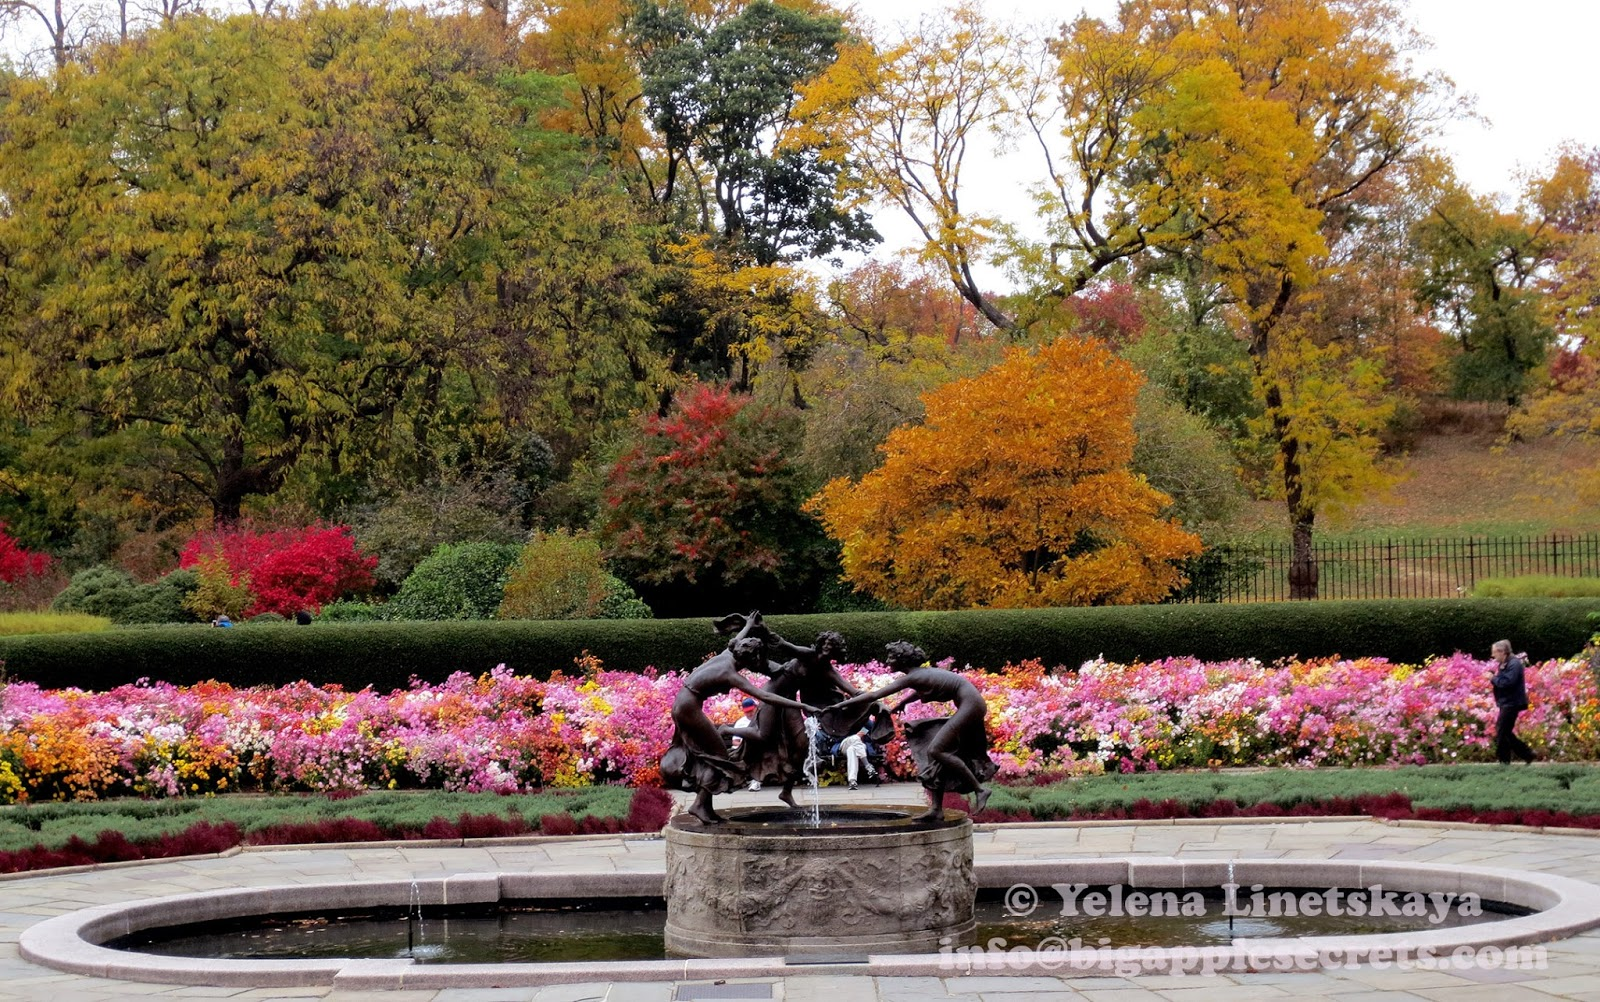 central park in middle upper manhattan one of the most famous parks in the world is the most visited urban park in the united states the conservatory - Central Park Conservatory Garden